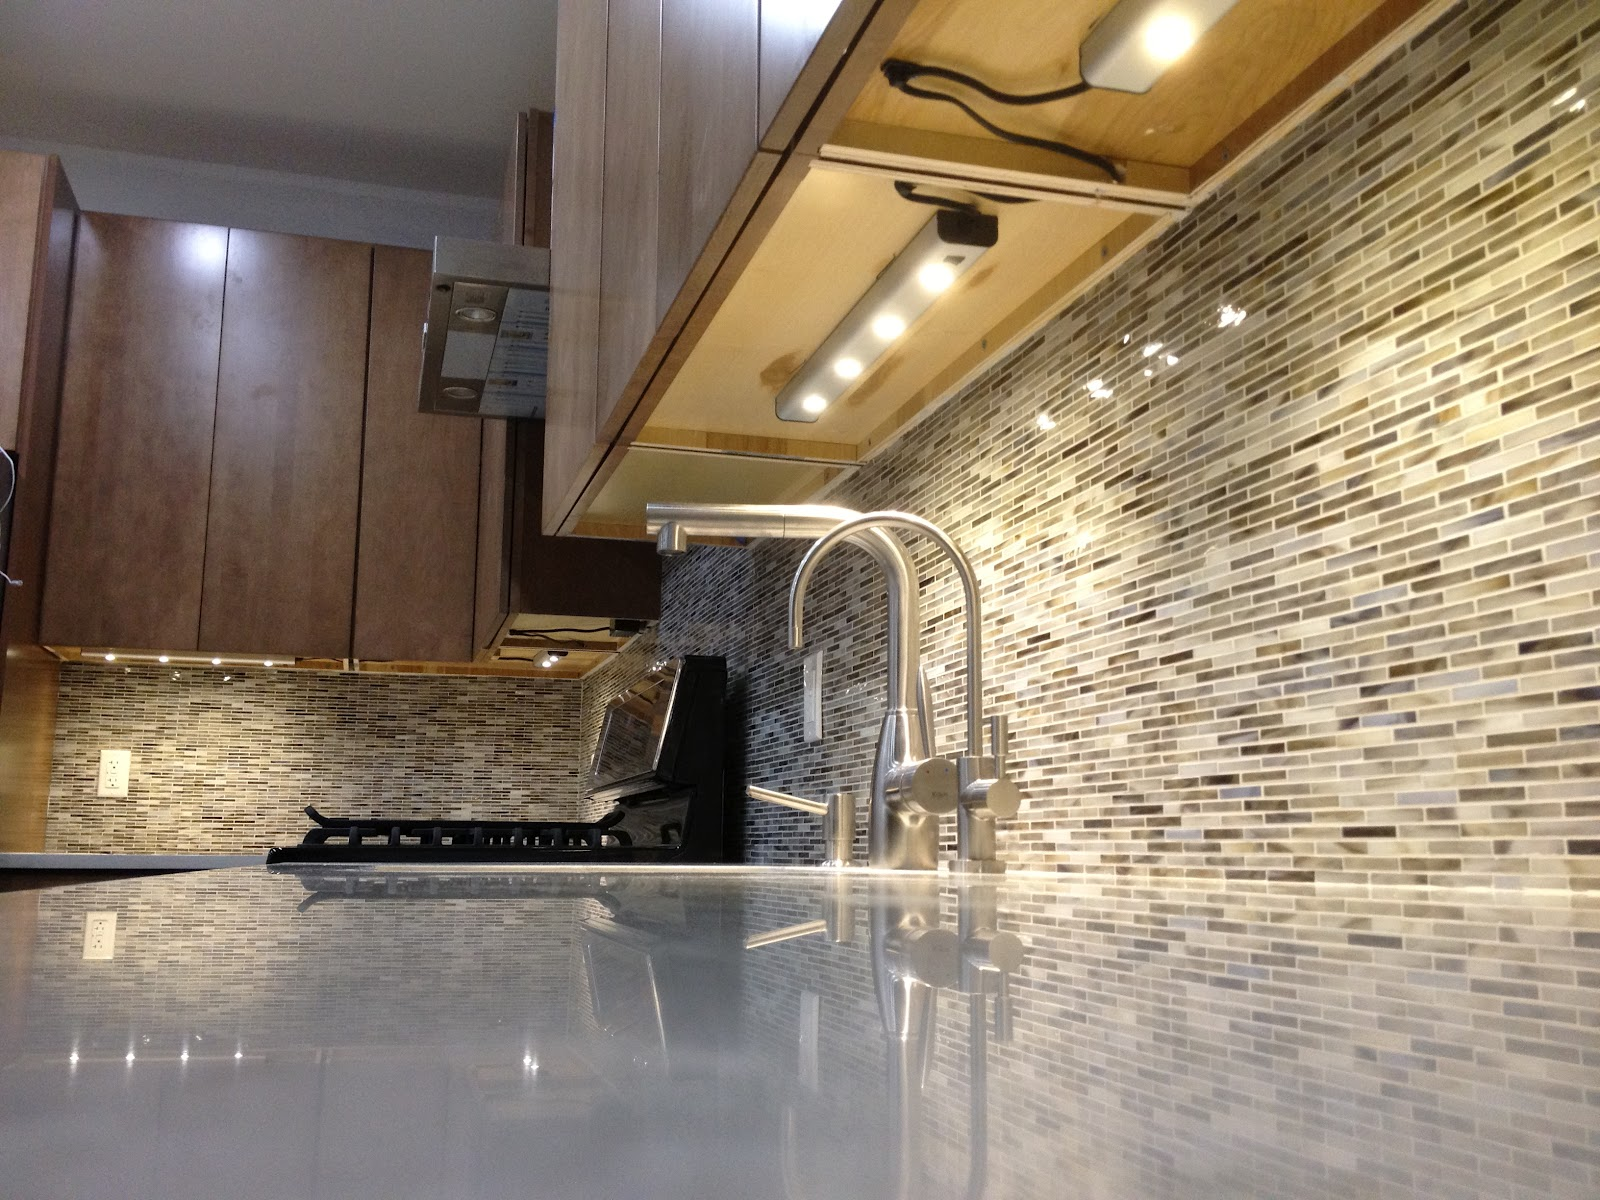 Groovy Undercabinet Lighting Madison Wi Westring Construction Home Interior And Landscaping Pimpapssignezvosmurscom